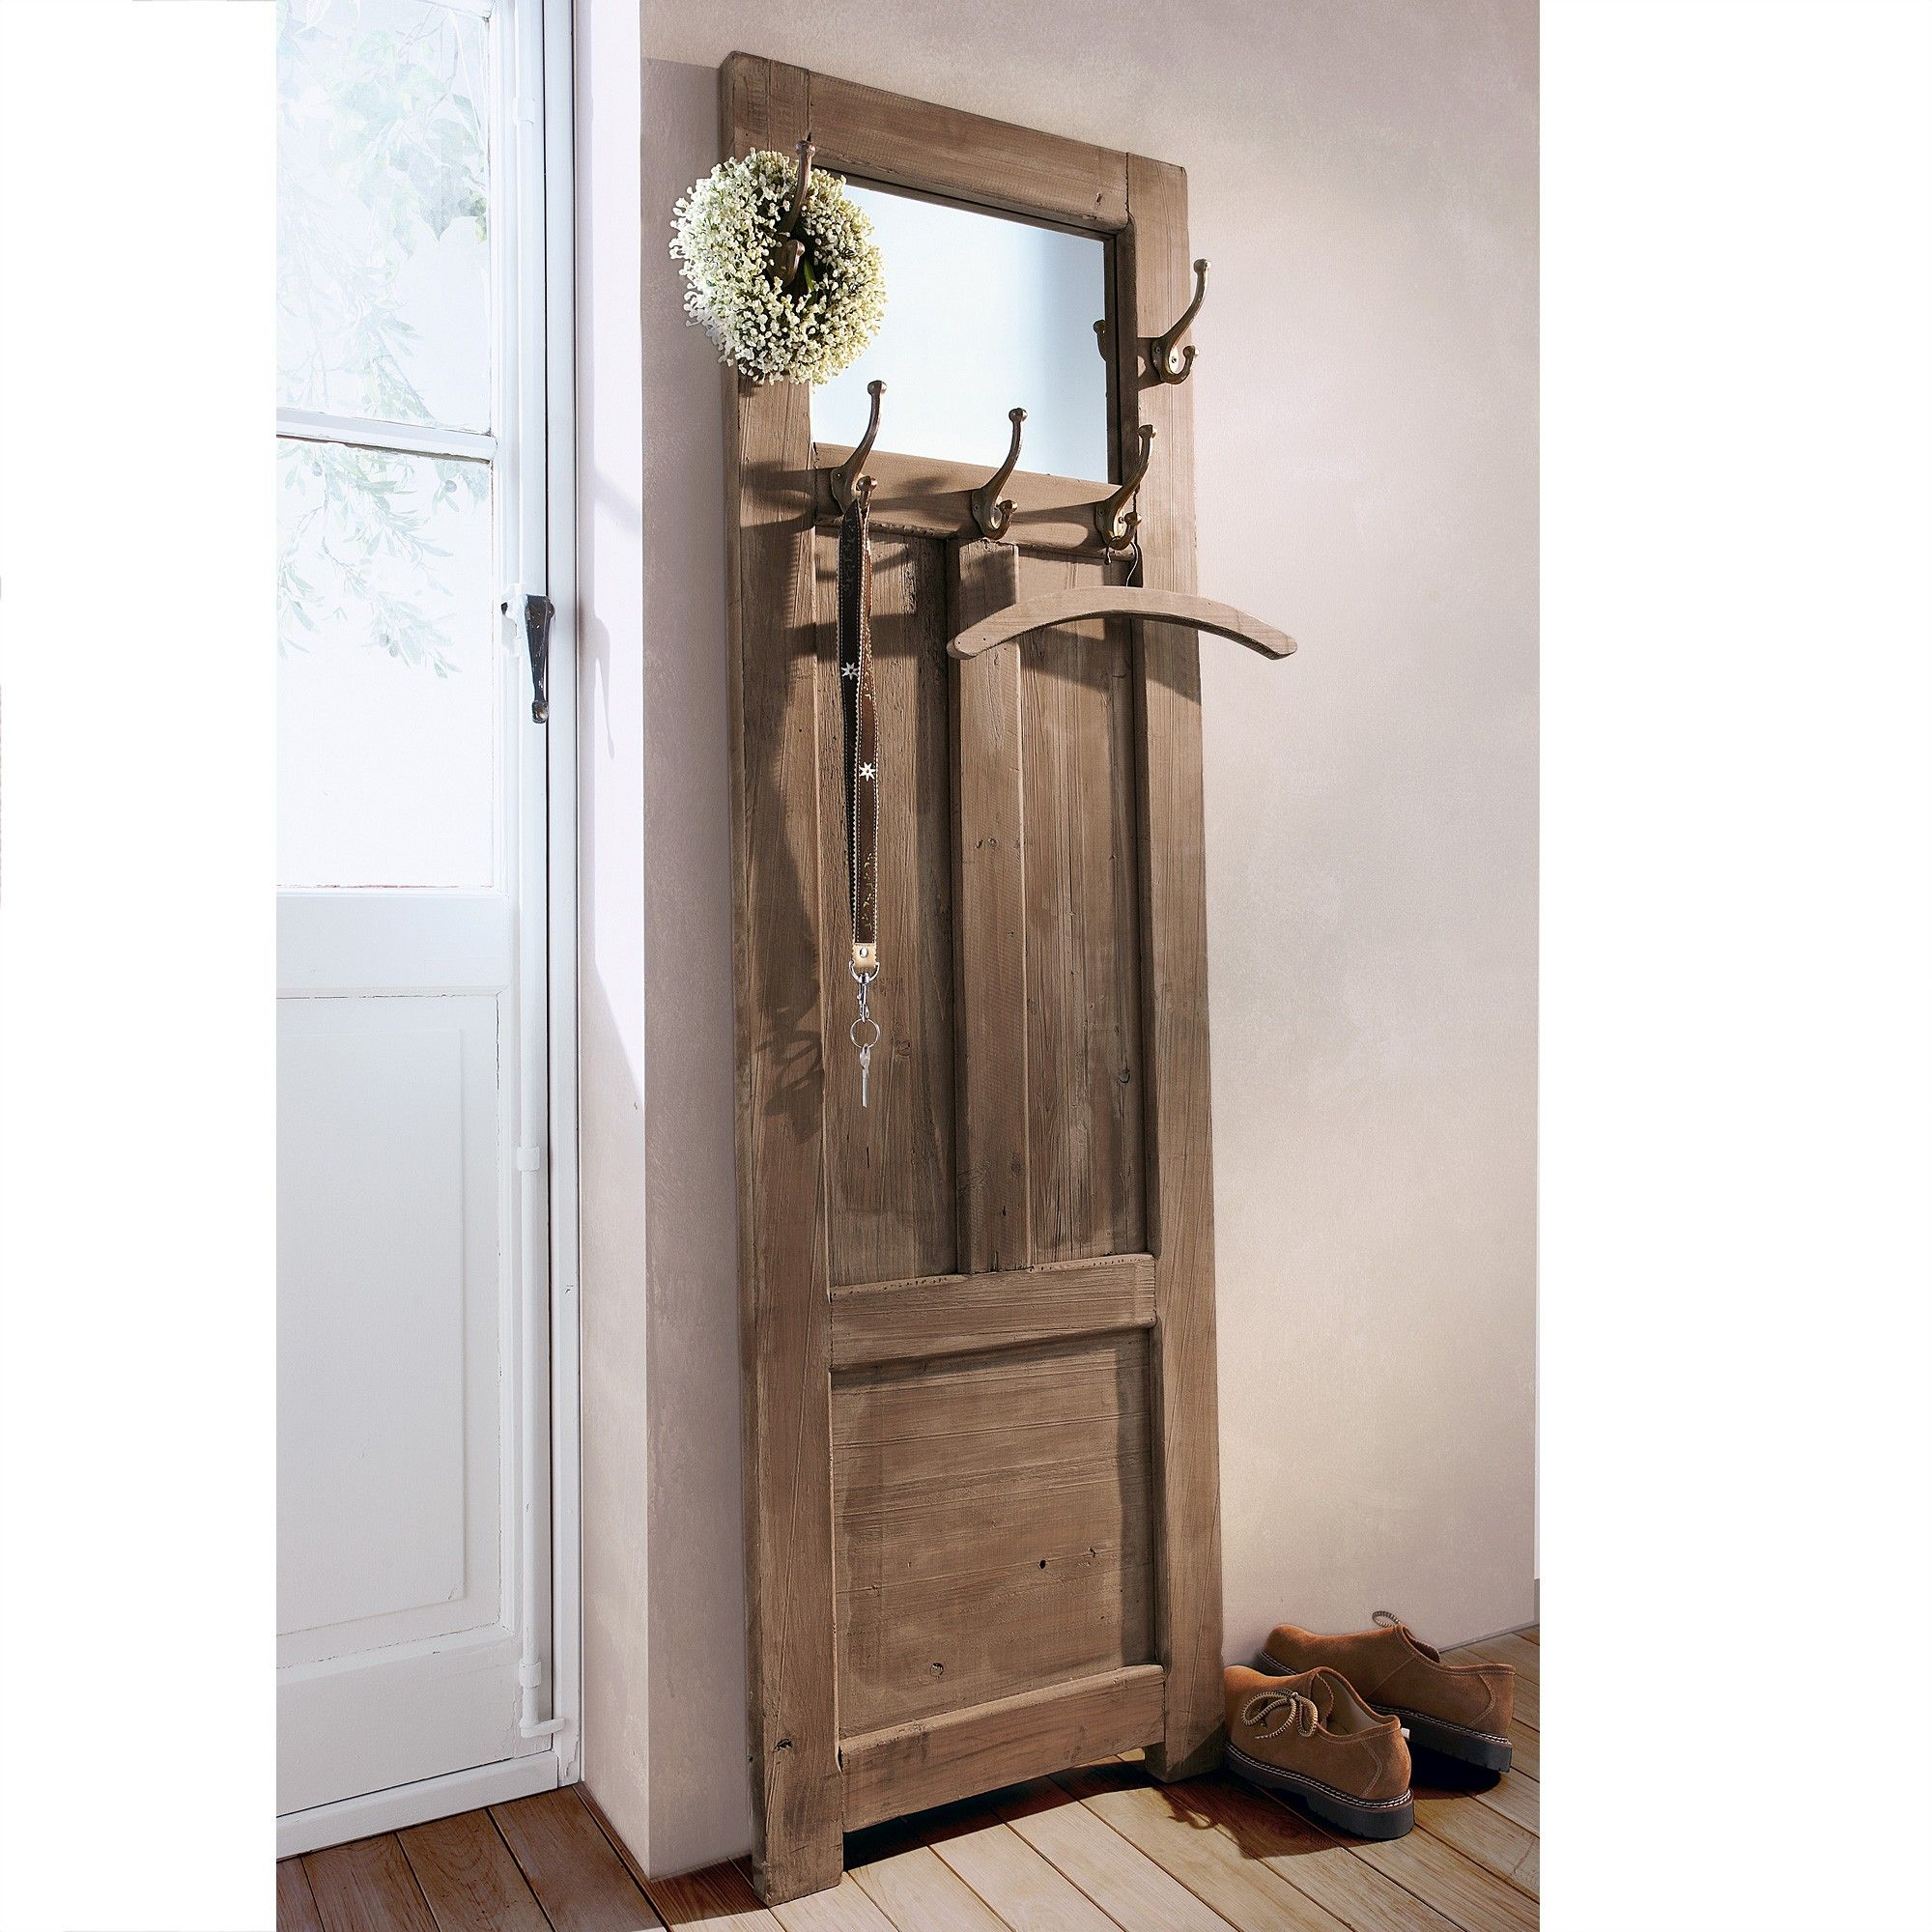 Tür Als Garderobe Billig Antik Garderobe Möbel Home Decor Doors Und Bedroom